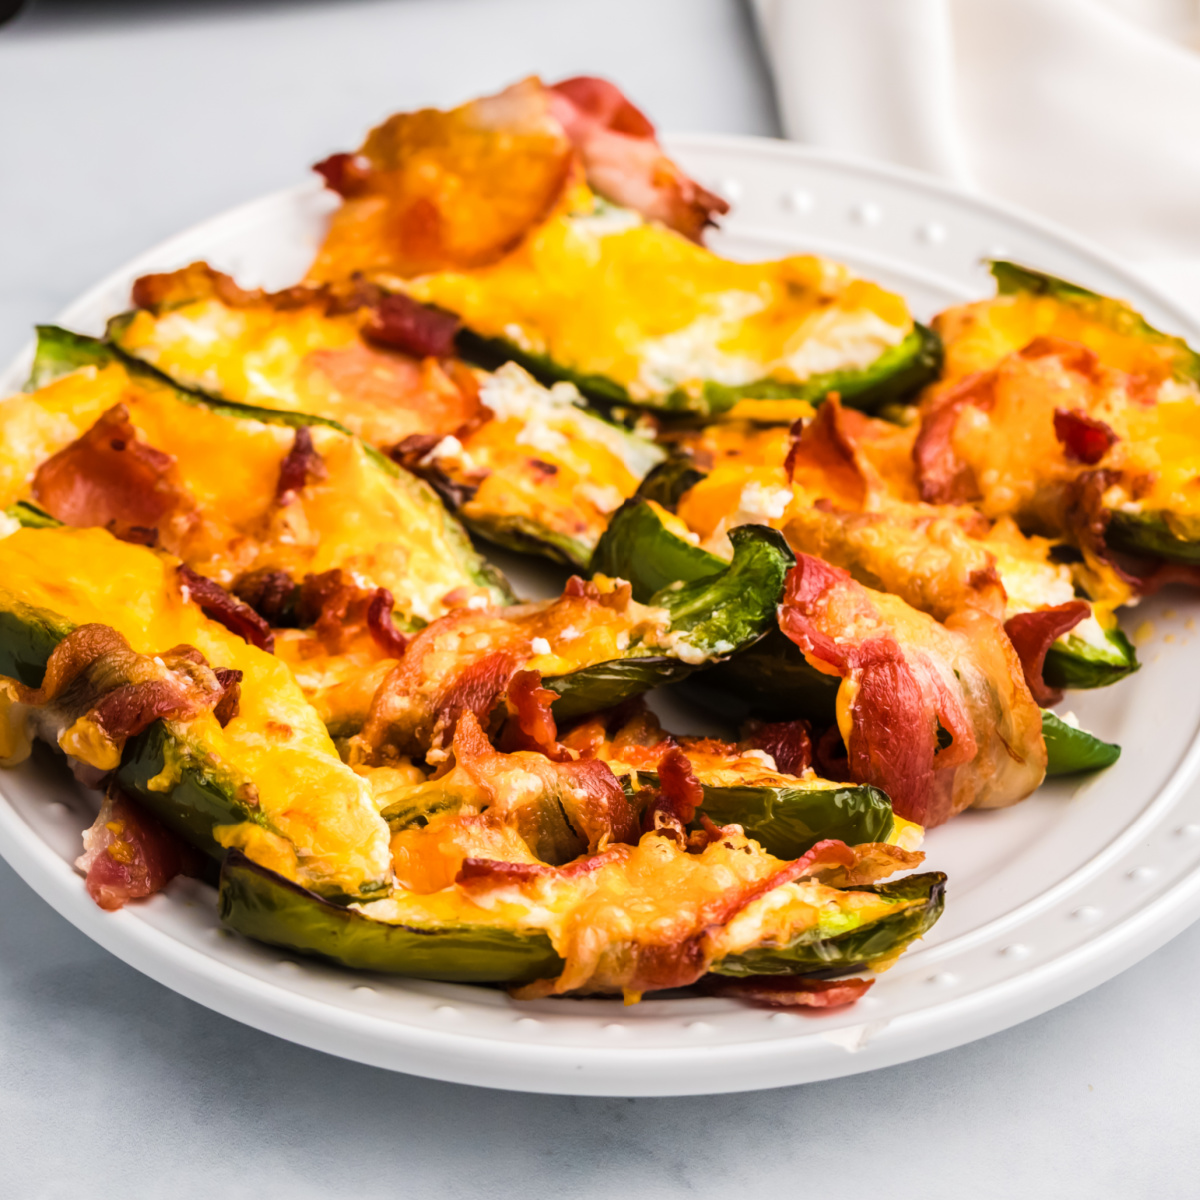 Cooked Jalapeno Poppers on a white plate ready to eat